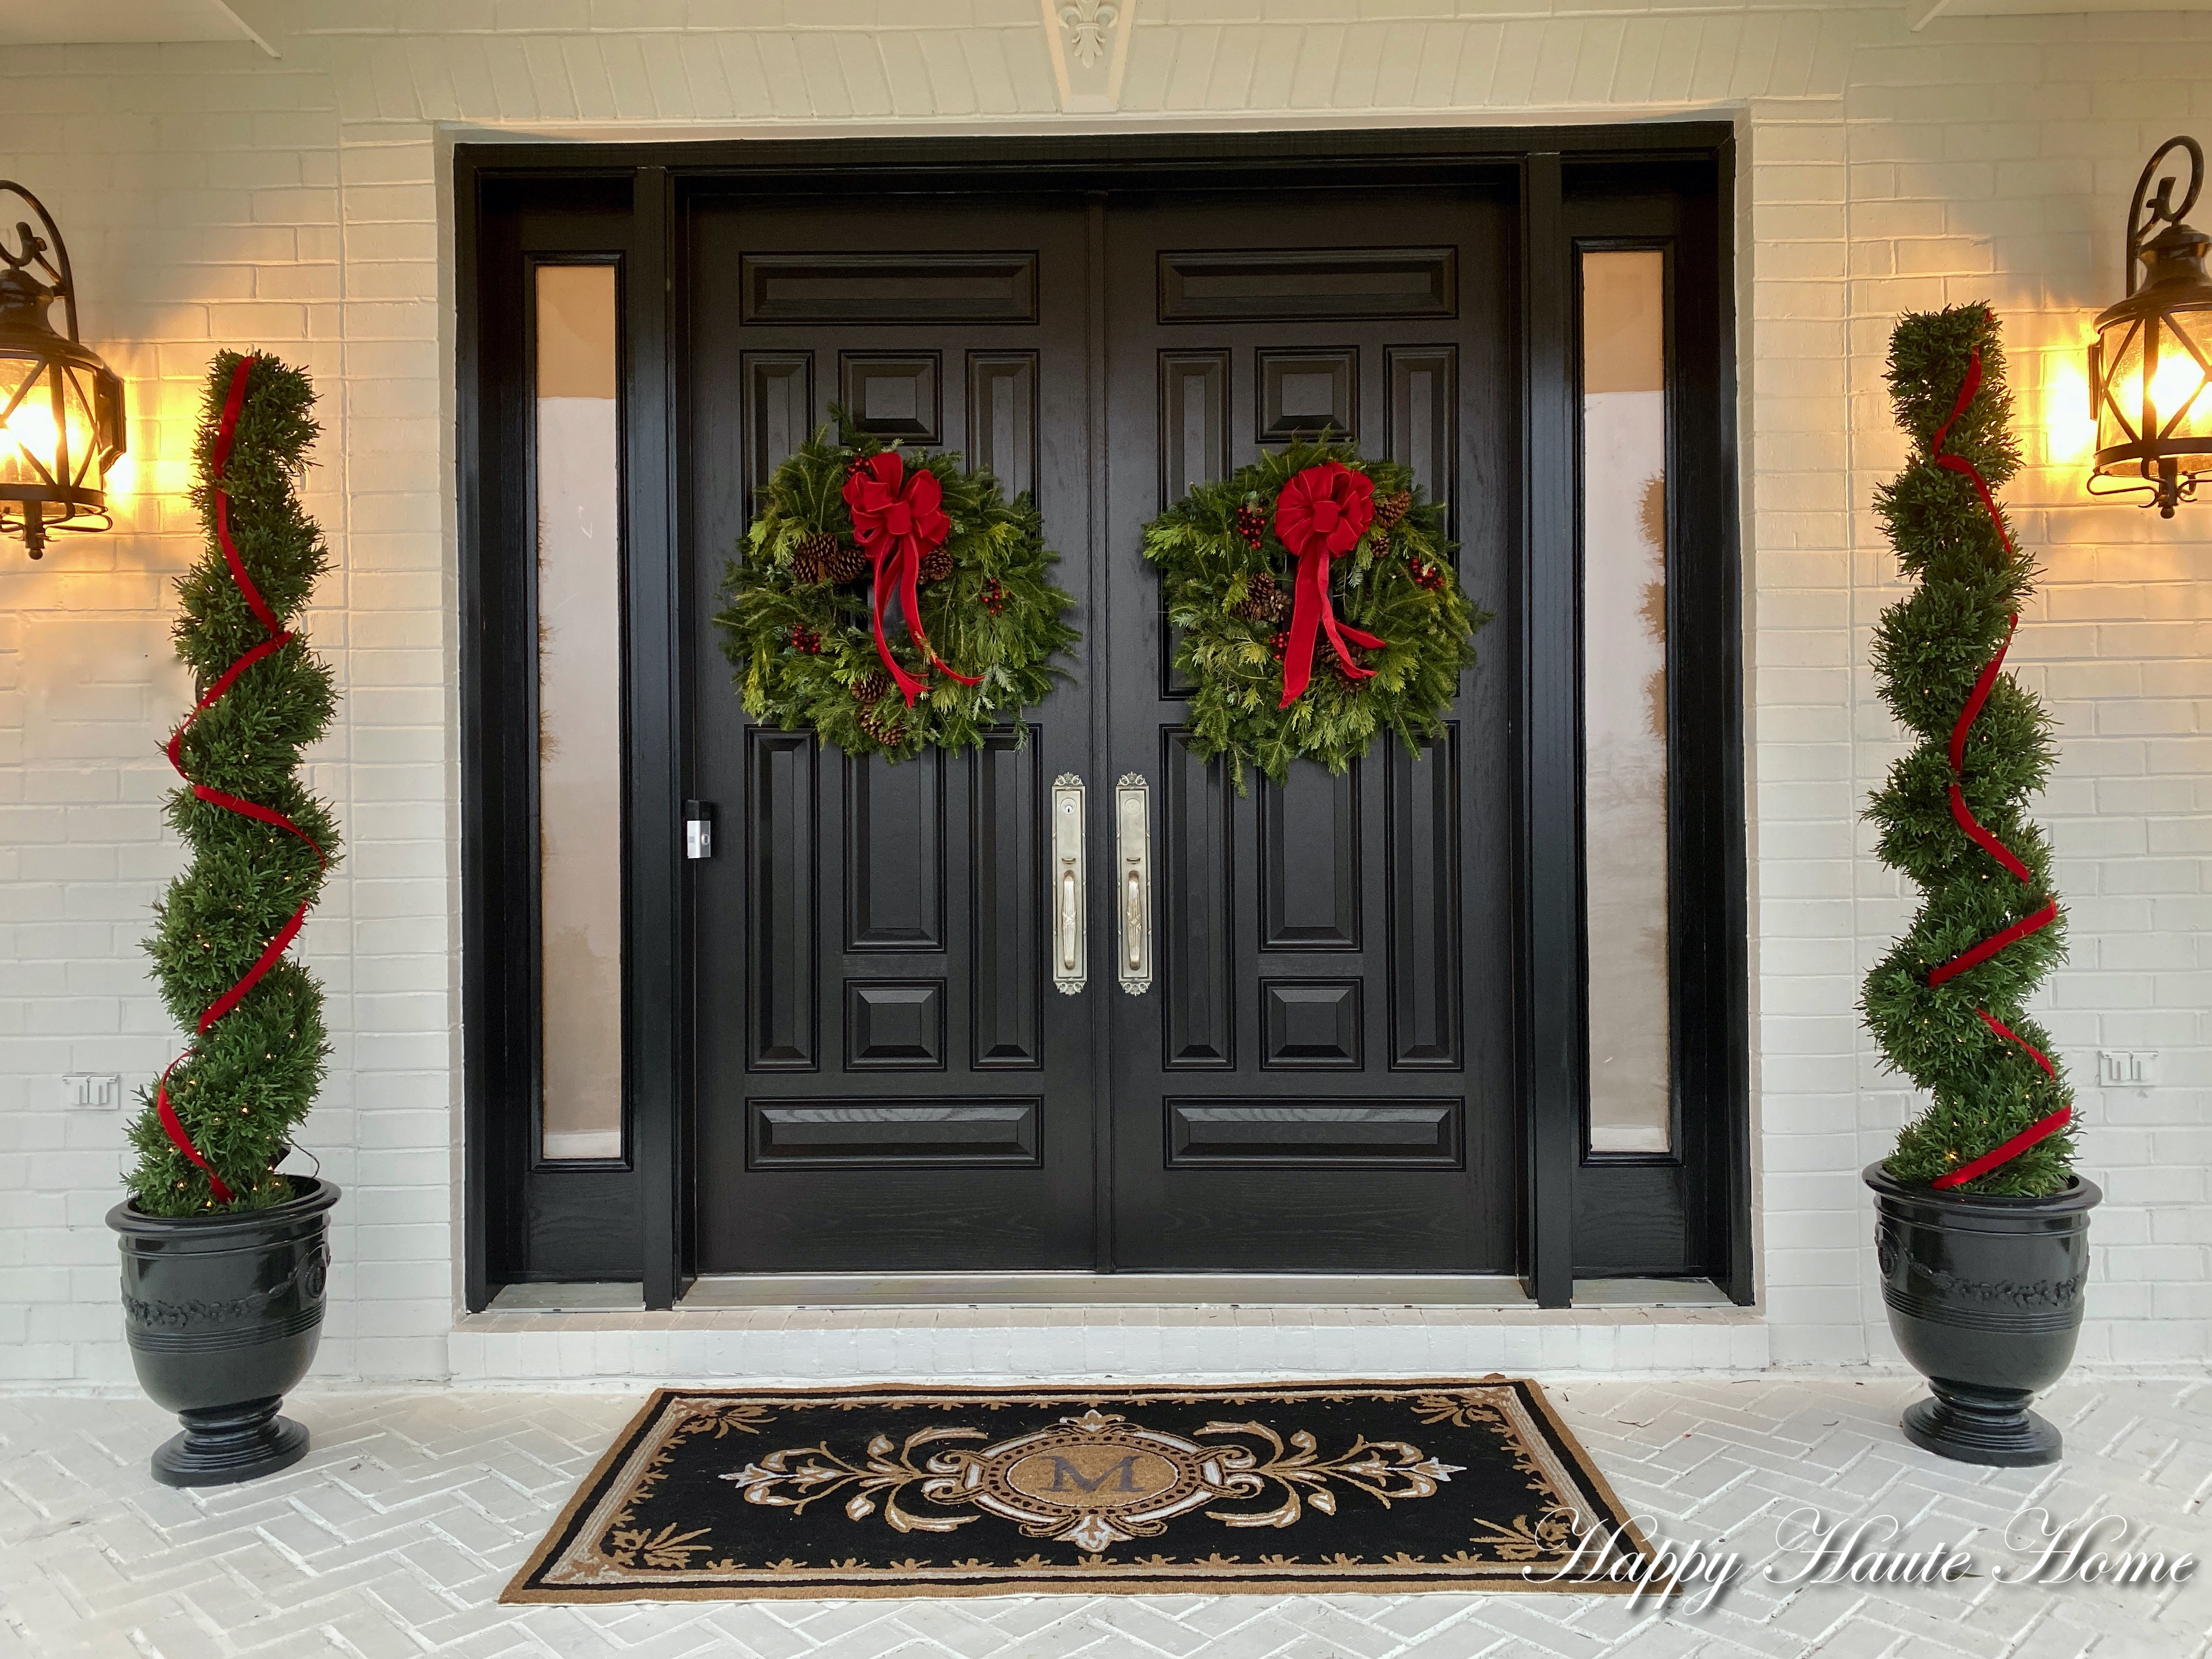 Easy Christmas Decor For The Front Porch 2019 Happy Haute Home